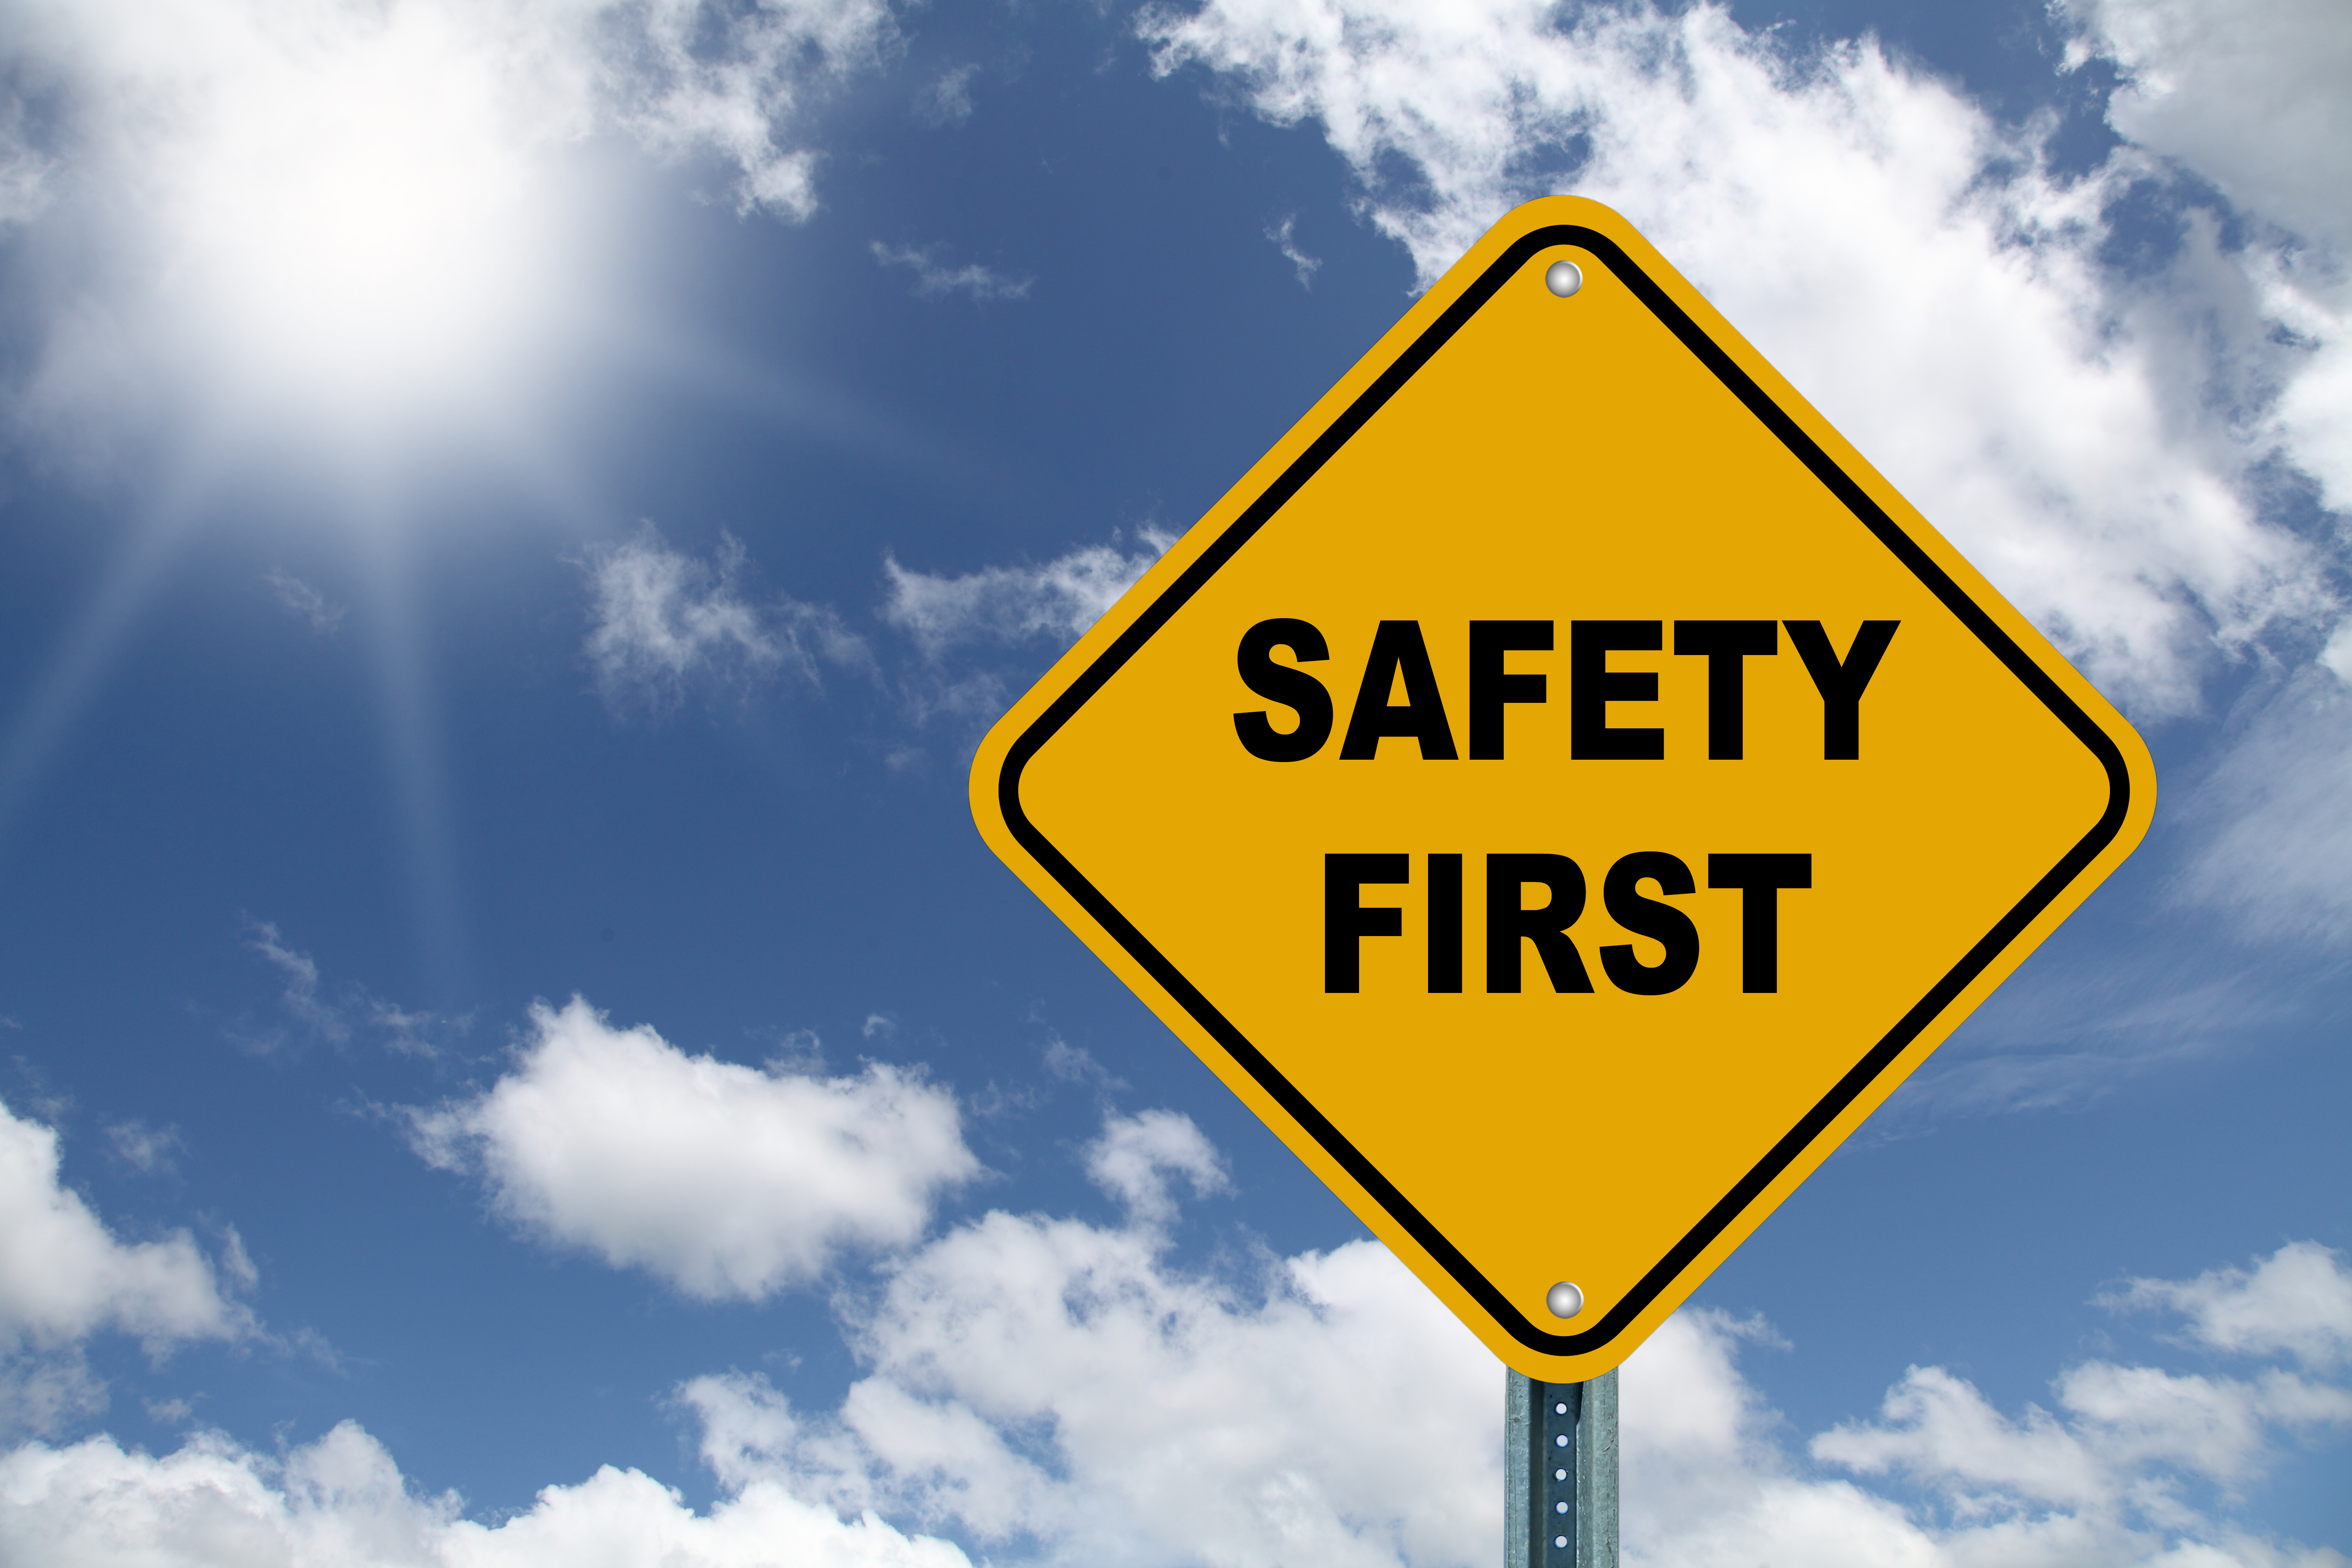 Staying Safe And Avoiding Hazards In The Workplace